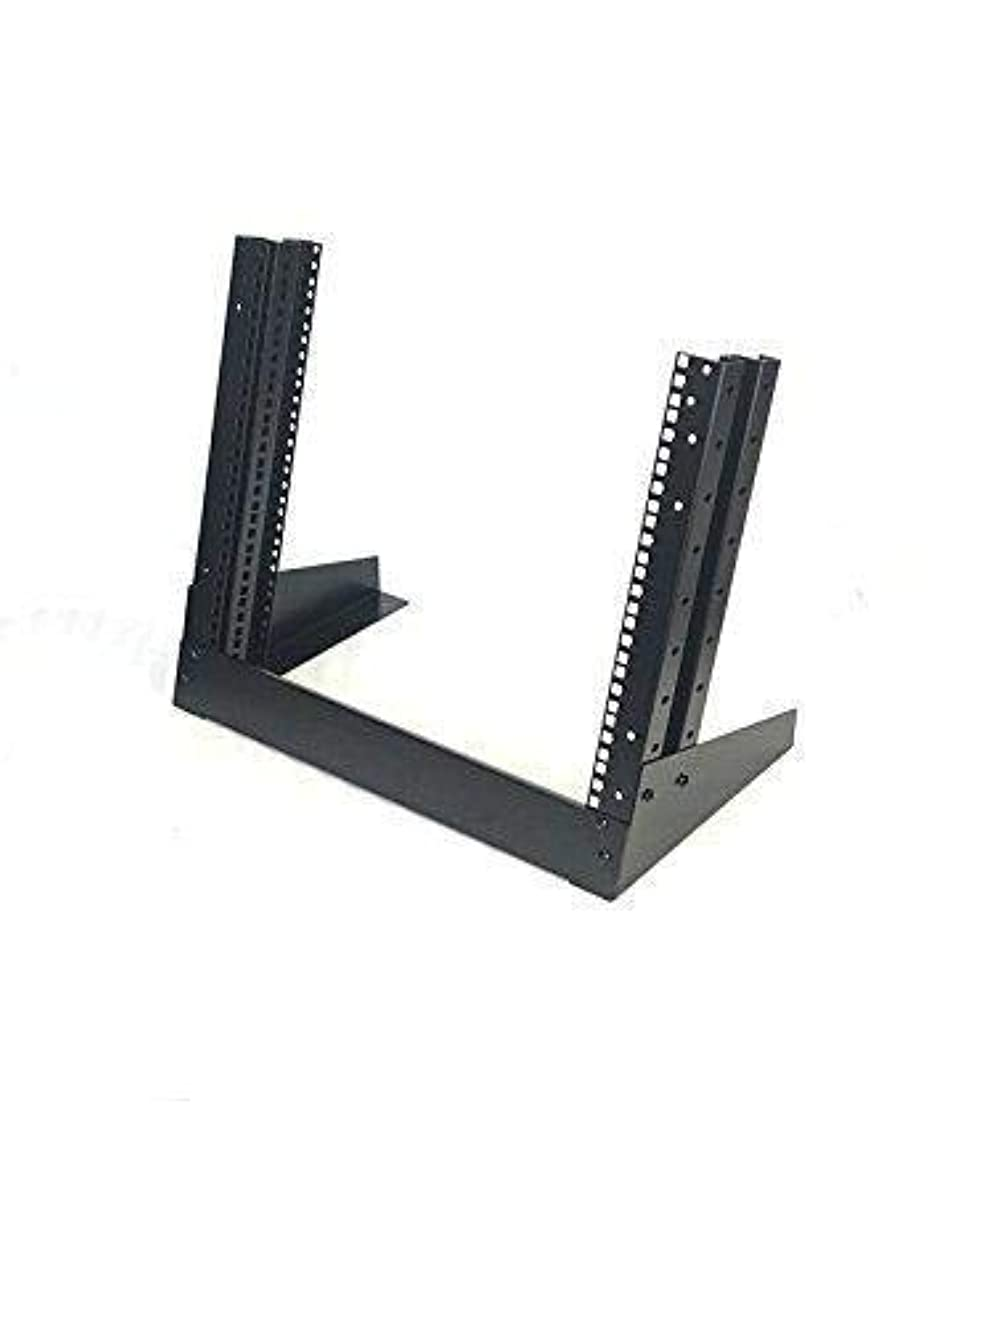 Raising 6U 8U 9U Stand Open rack Equipment fram for server networking and data system (8U)